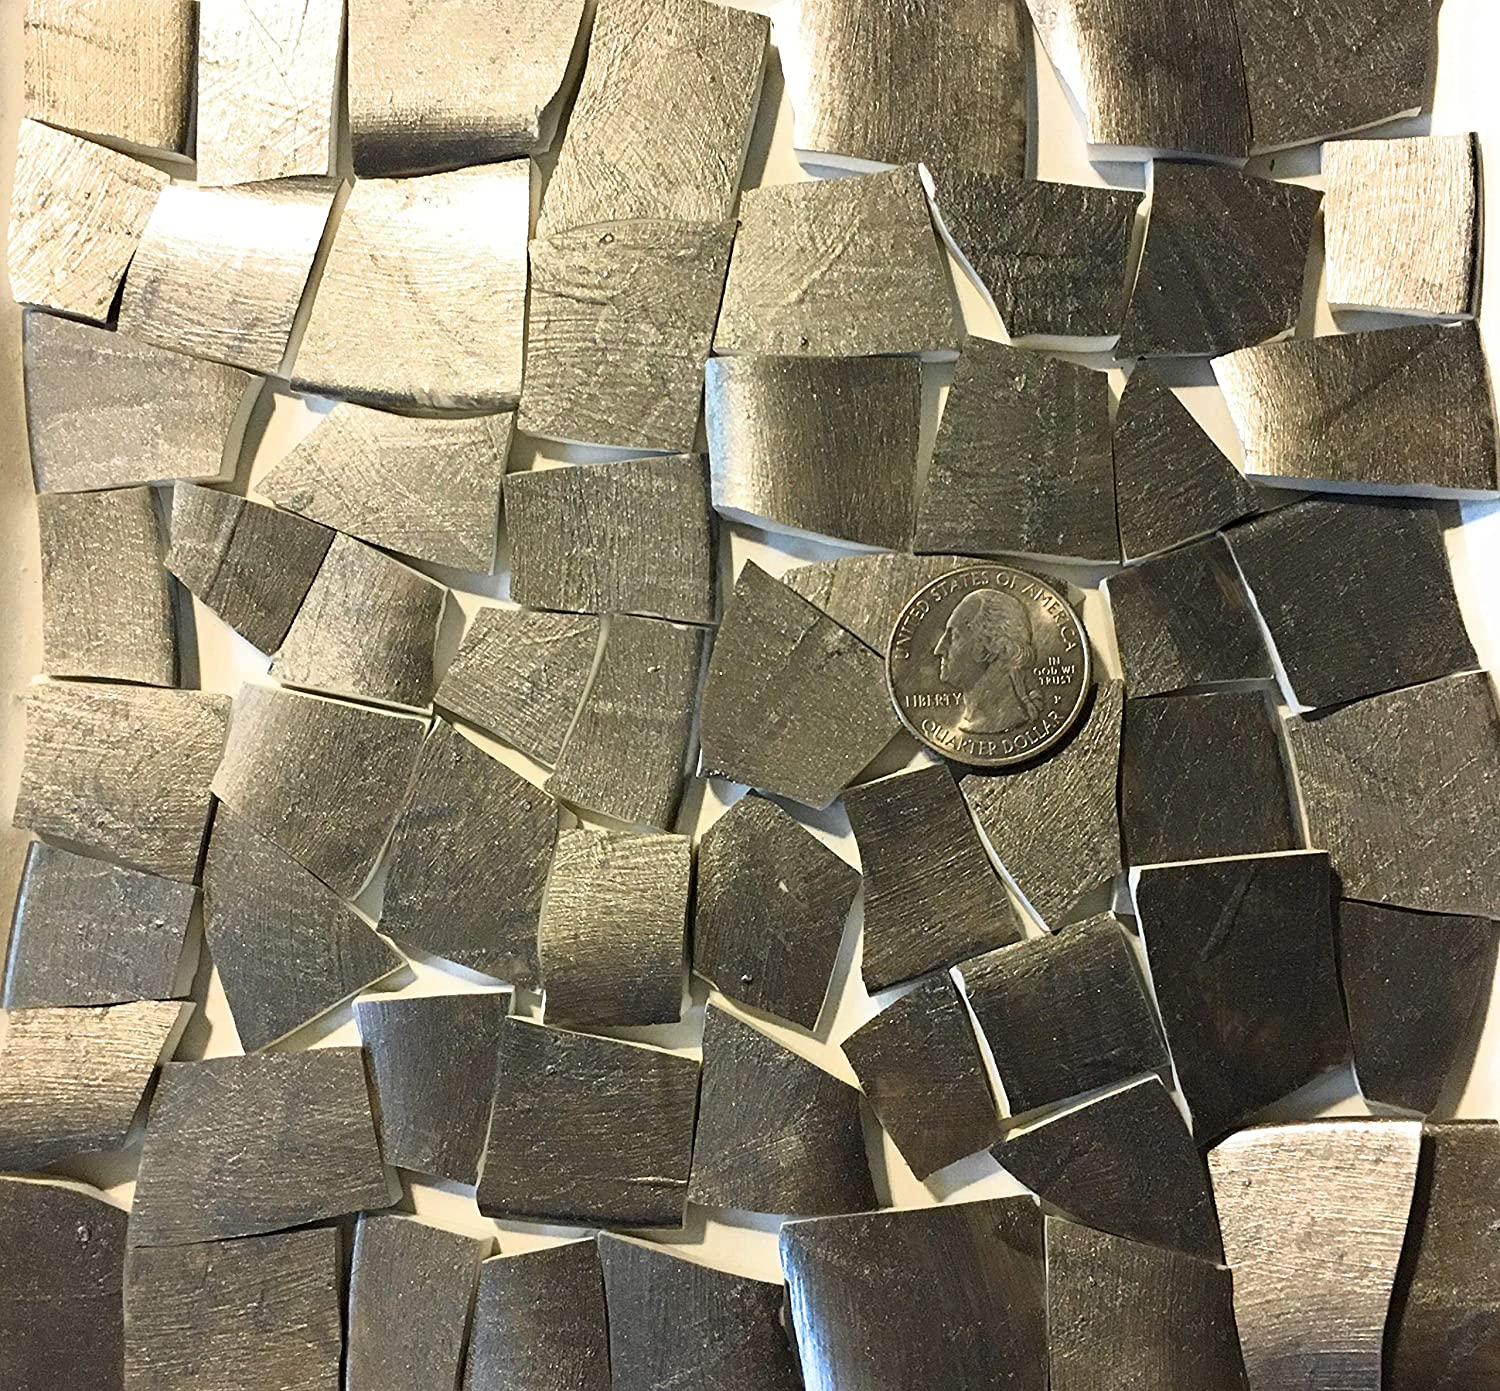 Mosaic Art and Crafts Supplies HP Hand Painted Recycled Broken Dish Tiles Metallic Pewter HP47